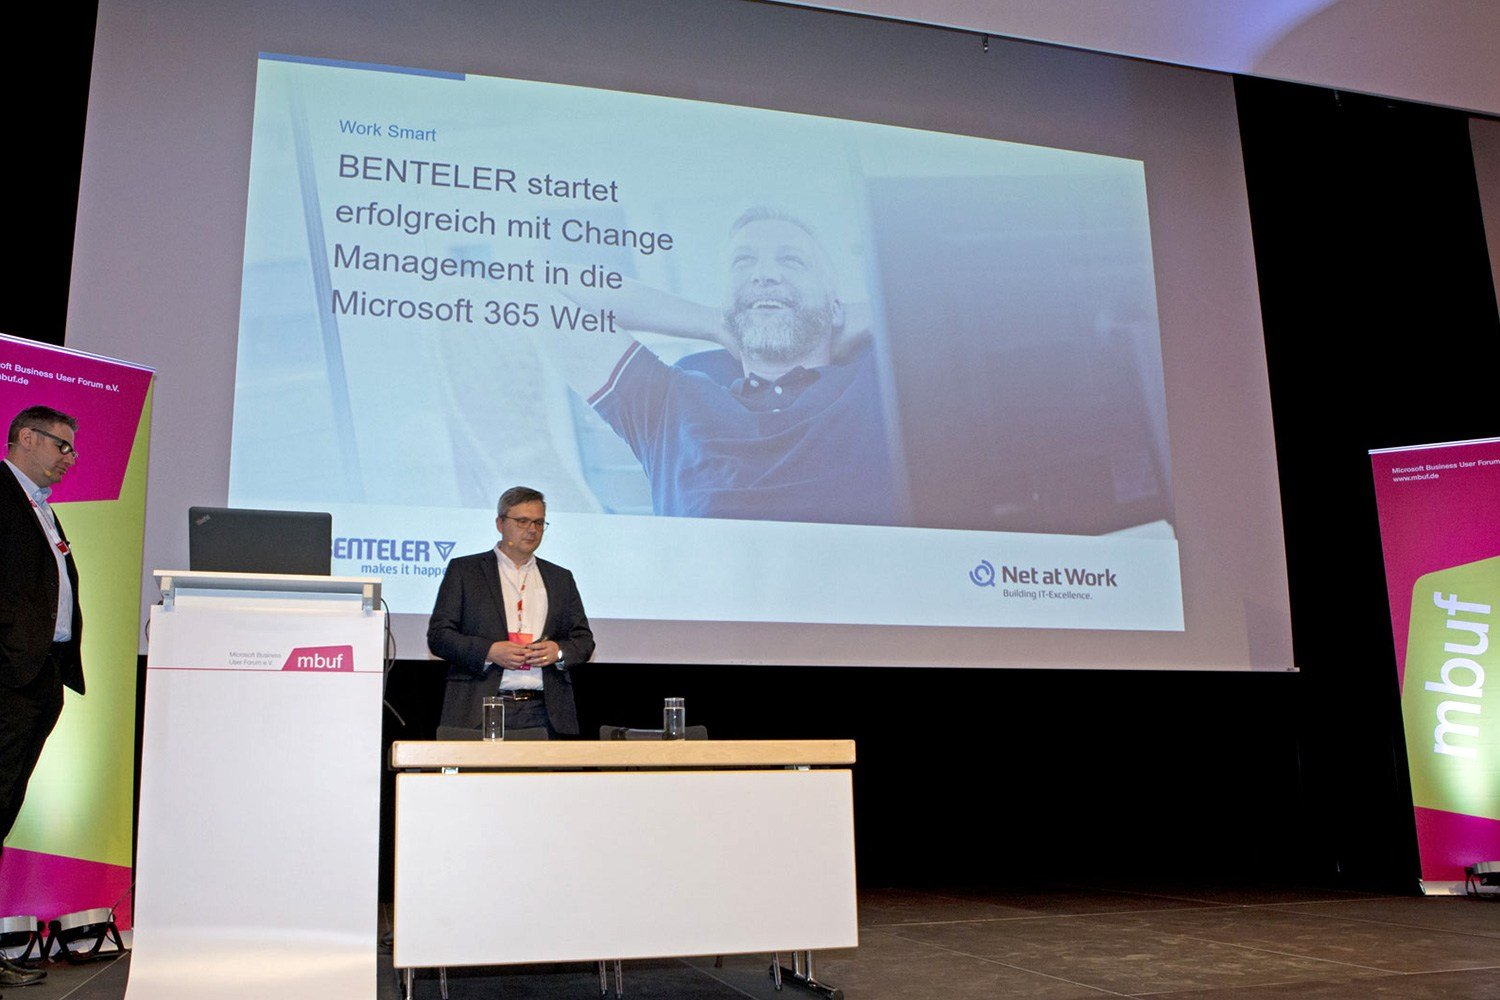 Microsoft Business User Forum 2019 Vortrag Benteler und Net at Work